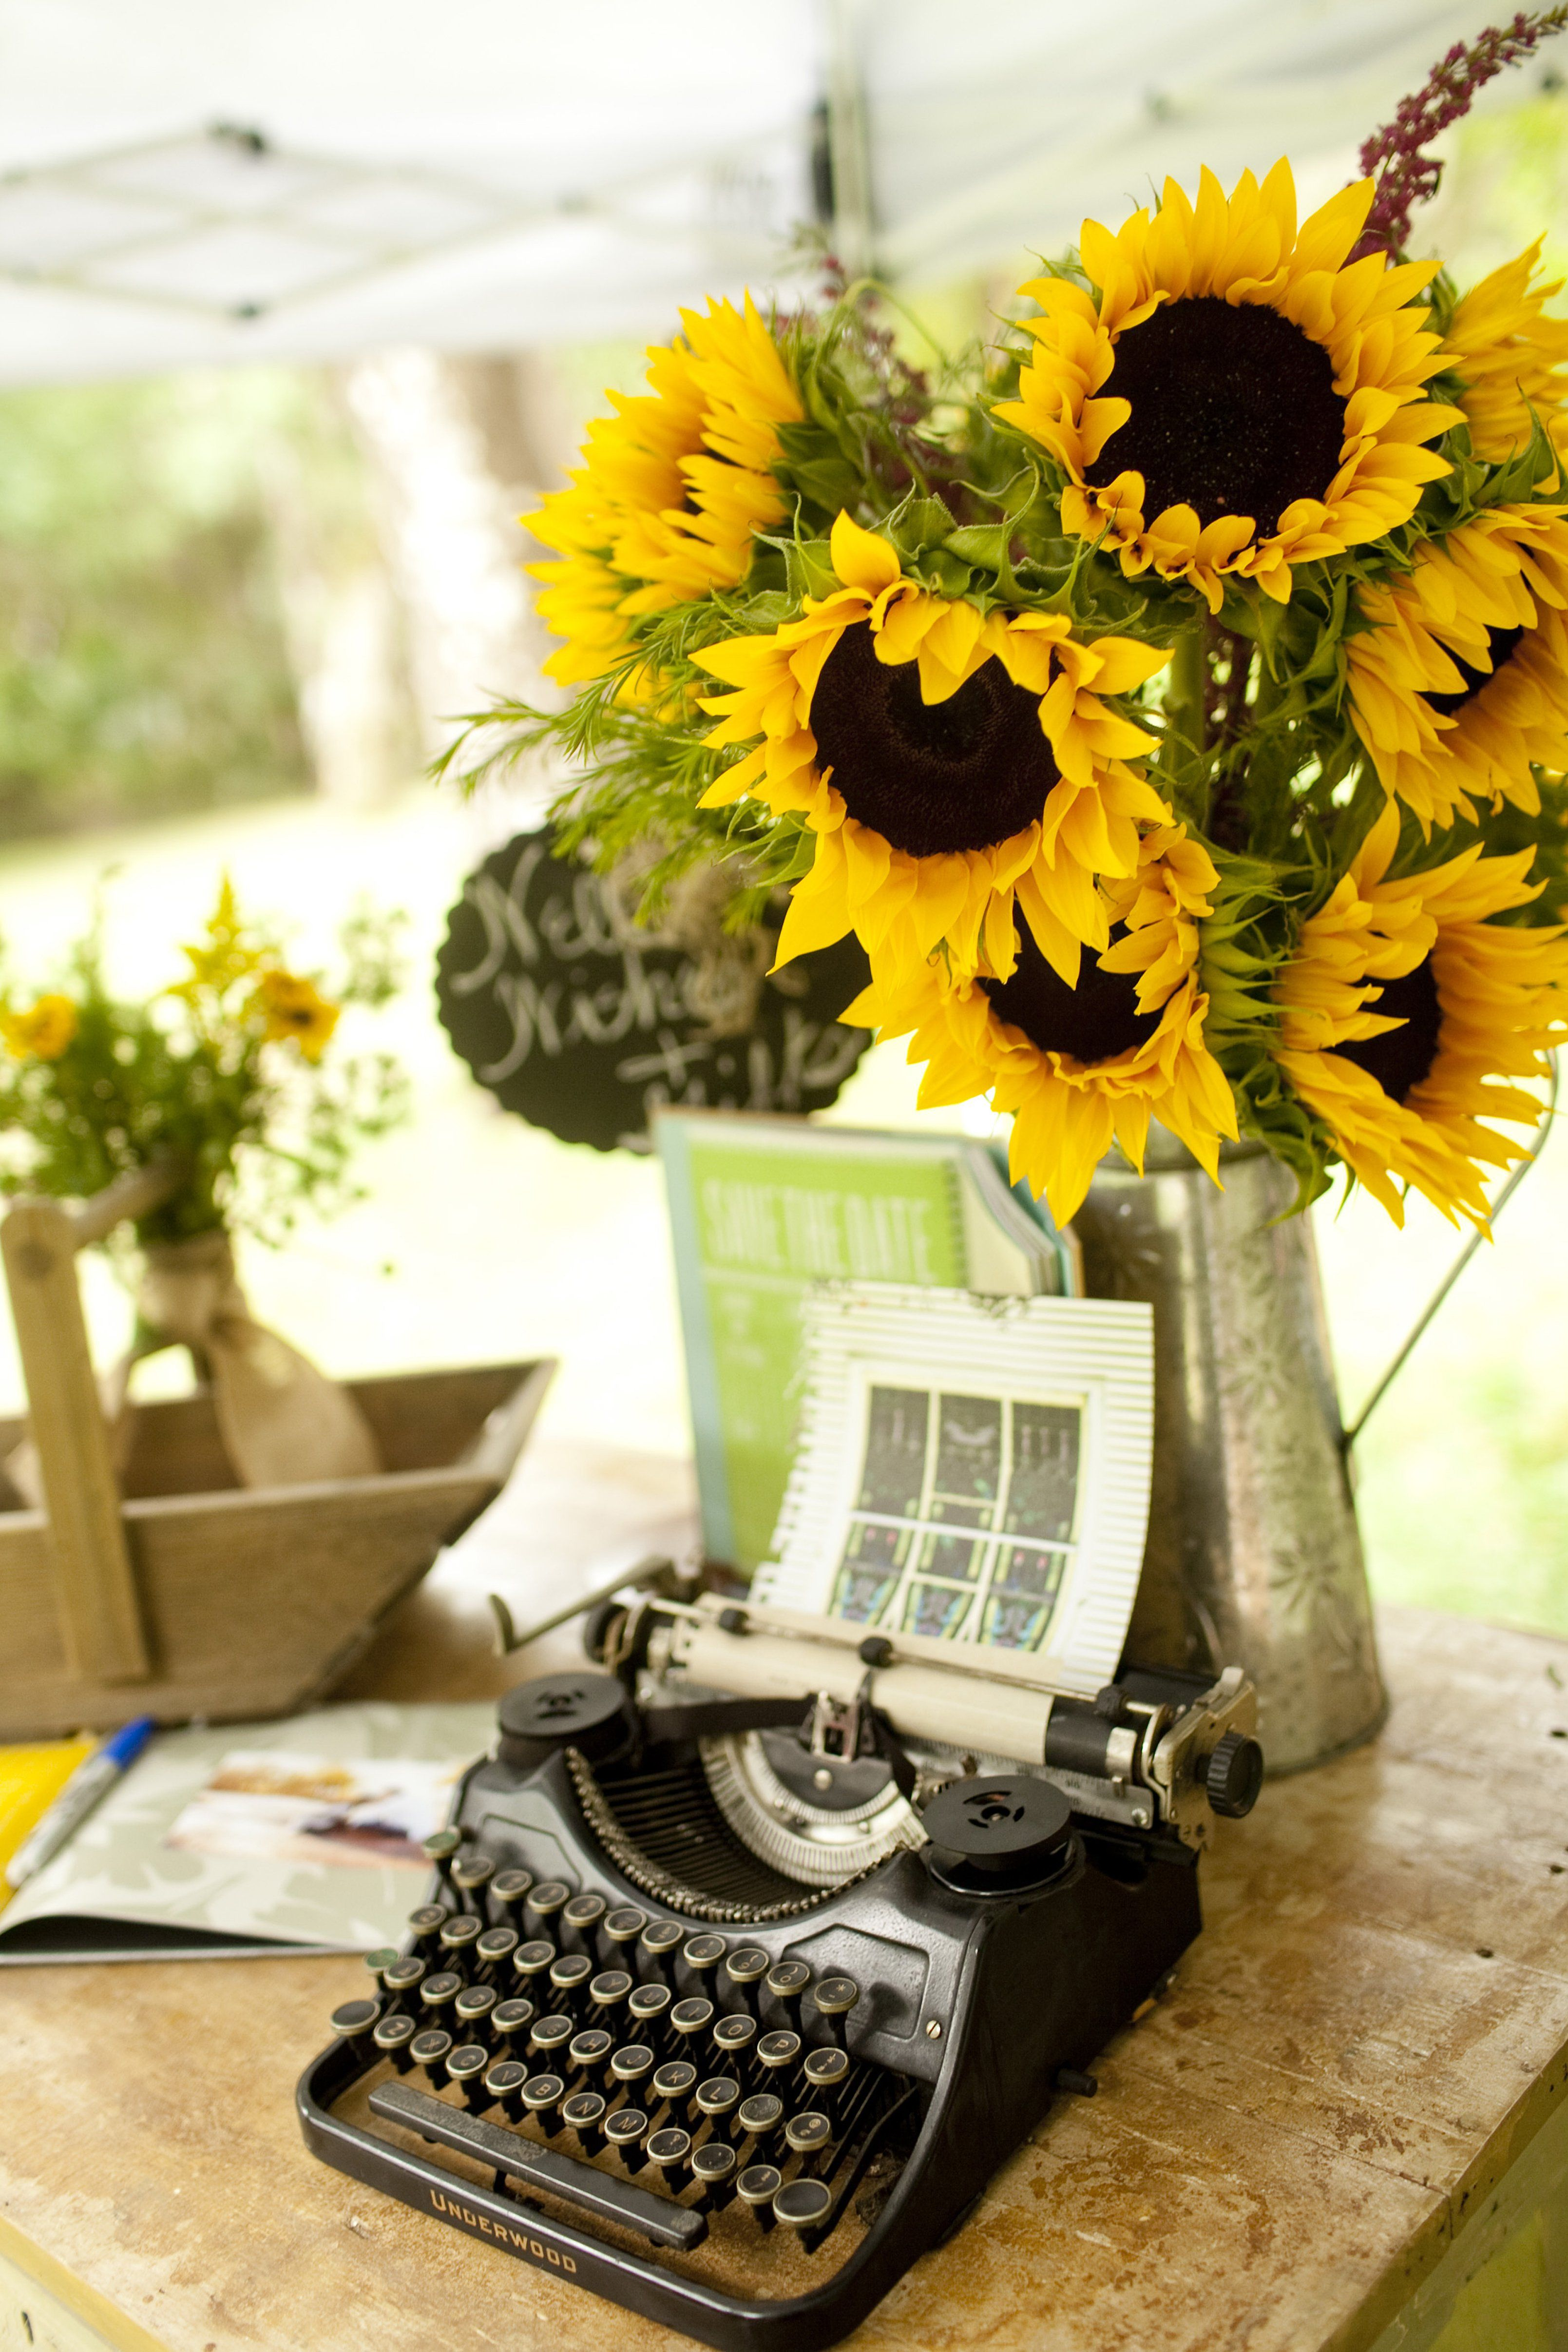 Vintage Typewriter and Sunflower Decor (With images